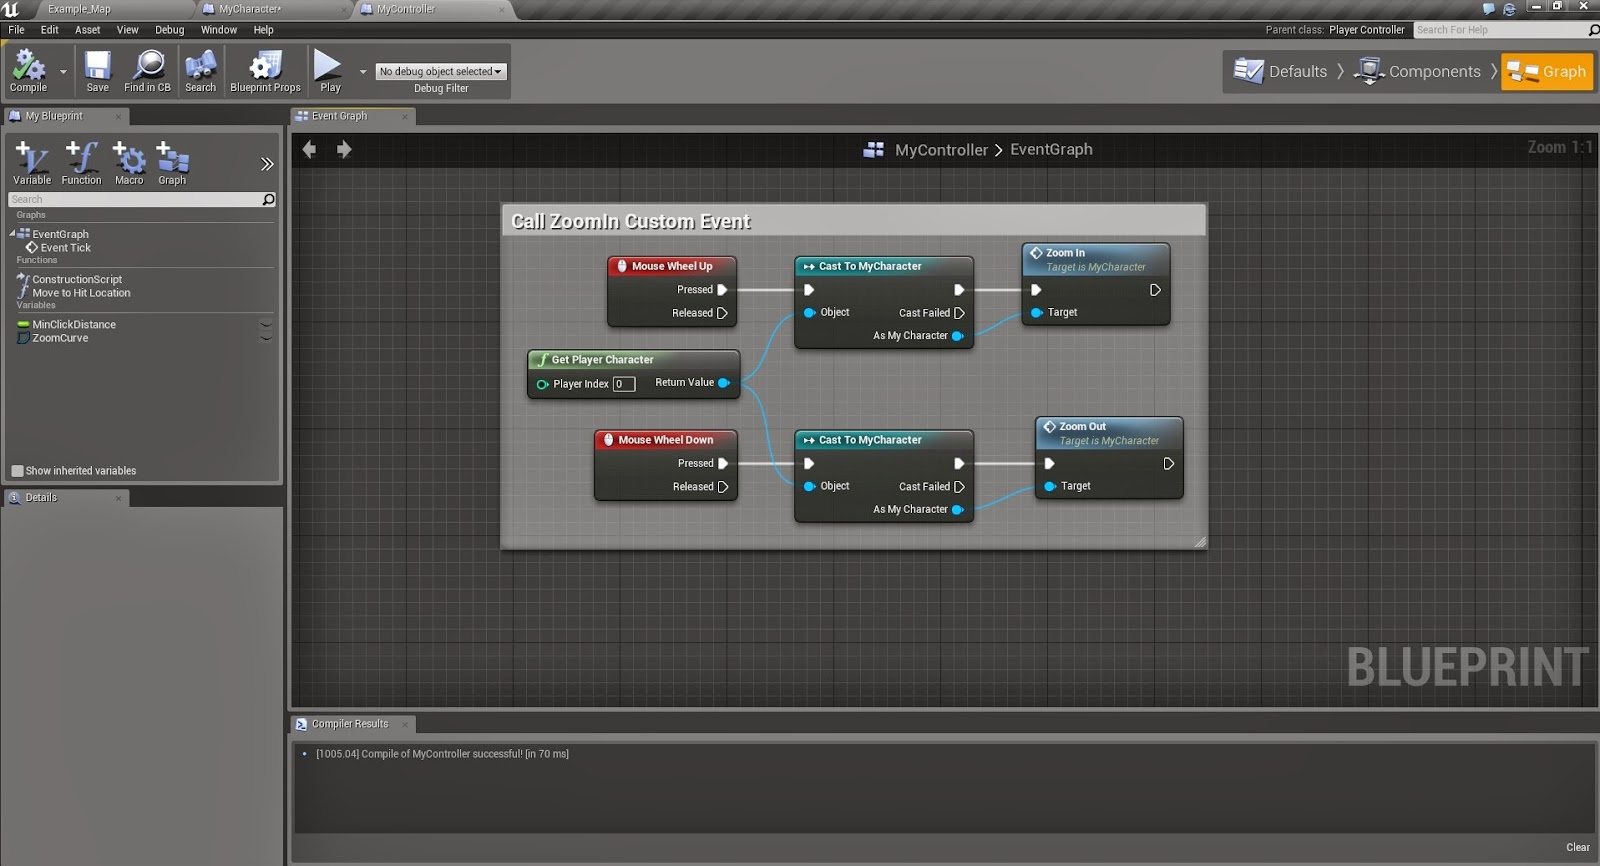 Unreal possibilities unreal engine 4 tutorial smooth zoom using mouse inputs to these events and we have a working smooth zoom system for the top down template heres a screenshot of the player controller blueprint malvernweather Gallery